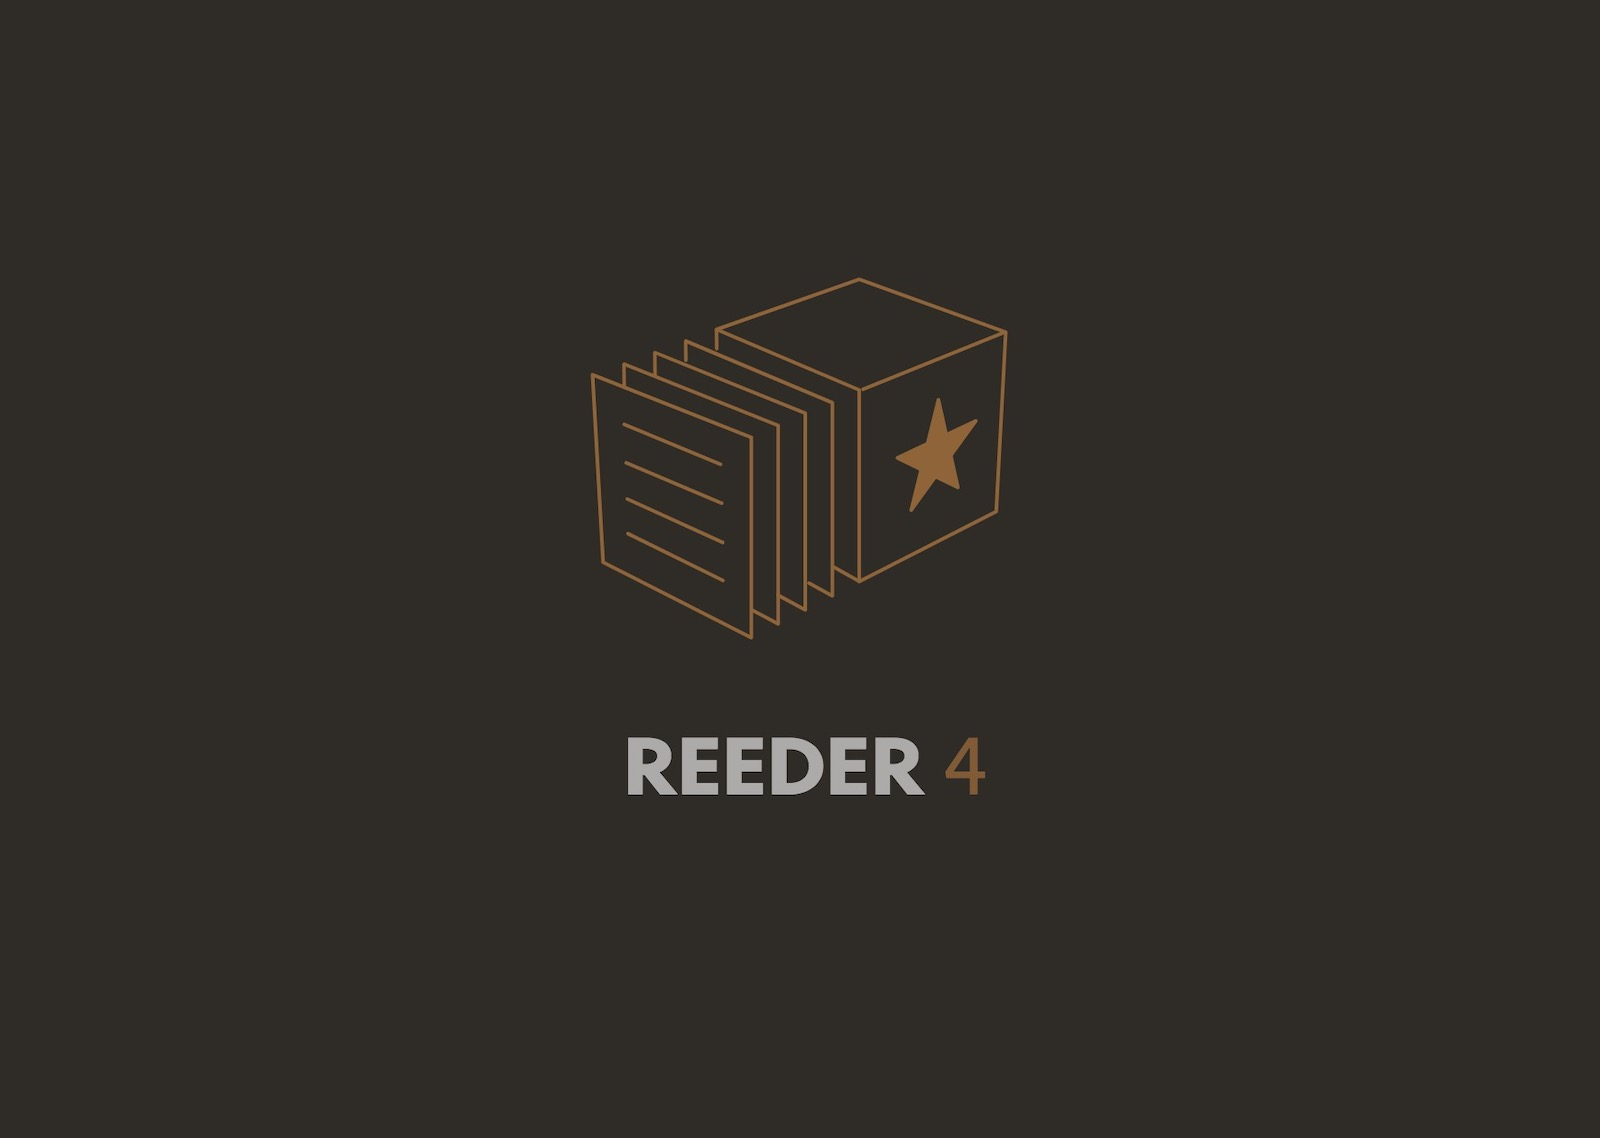 reeder-4-for-mac-and-iphone.jpg